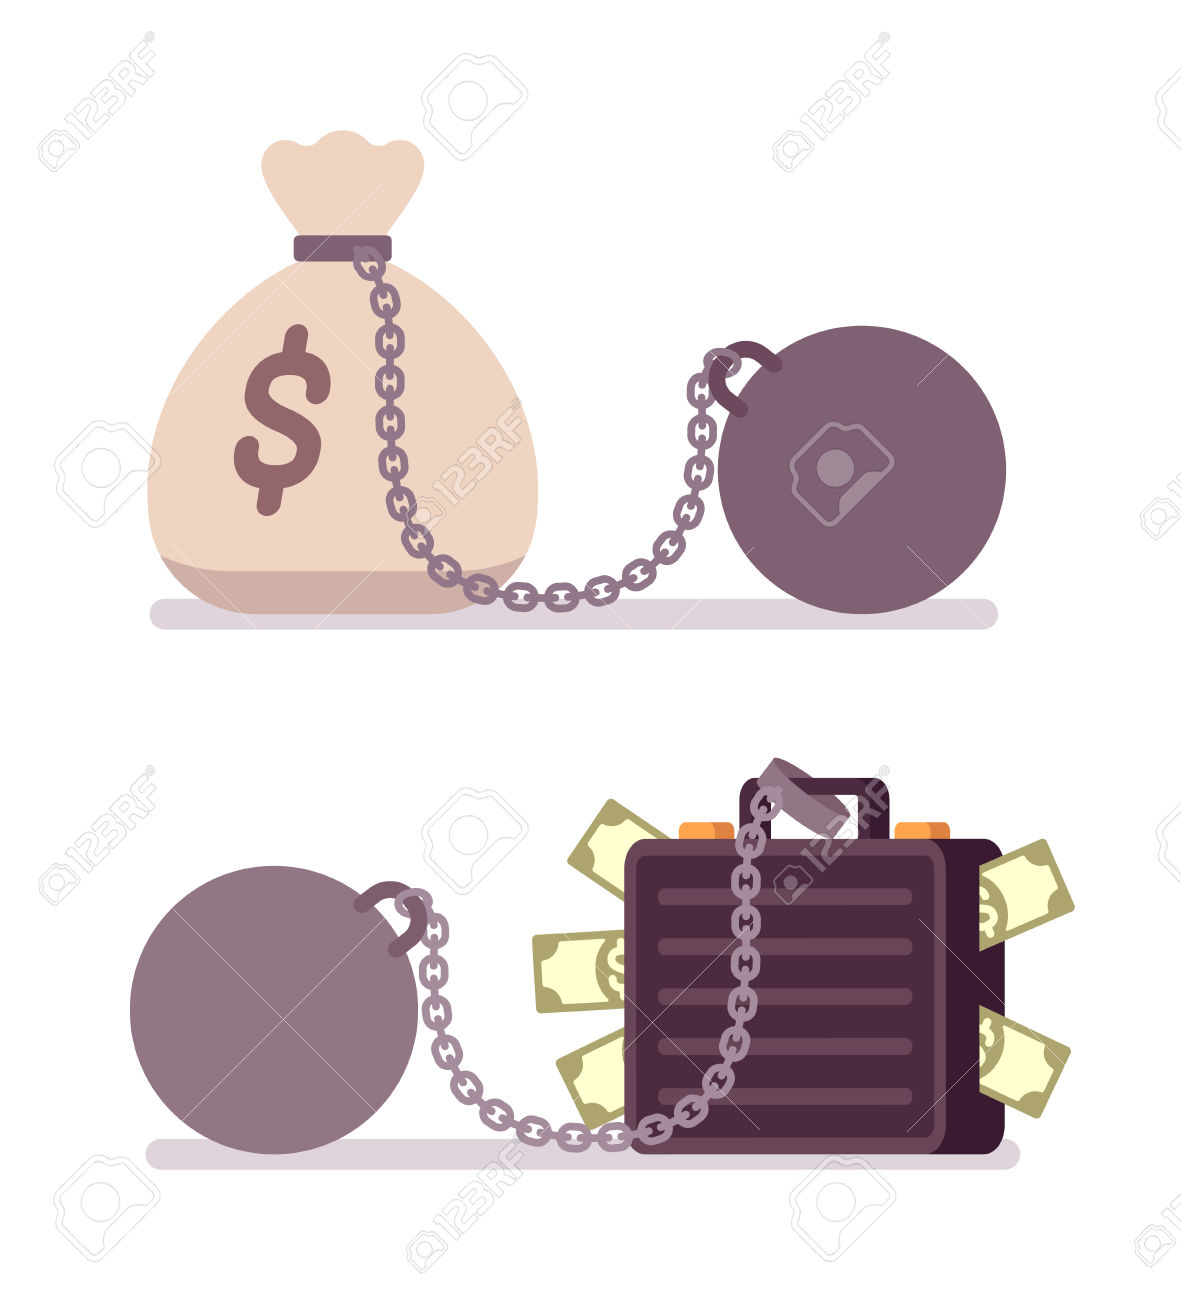 Case Full Of Money And Money Sack On A Metal Chain With Weight.